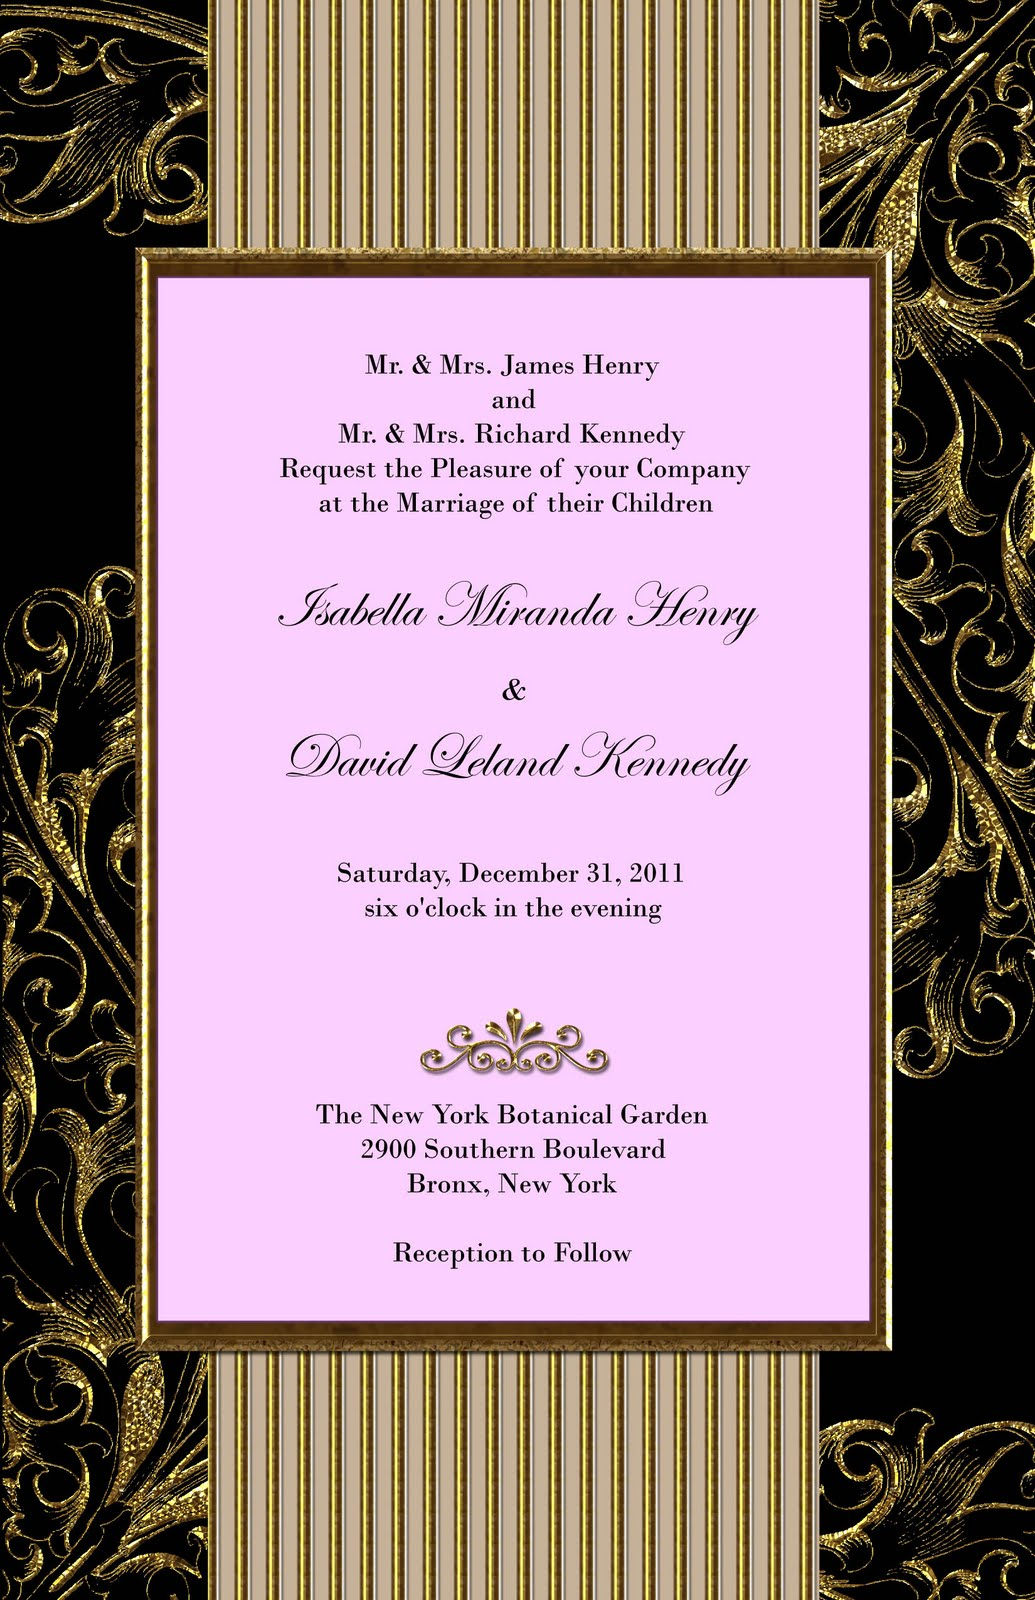 Dacia\'s blog: golden wedding invitation